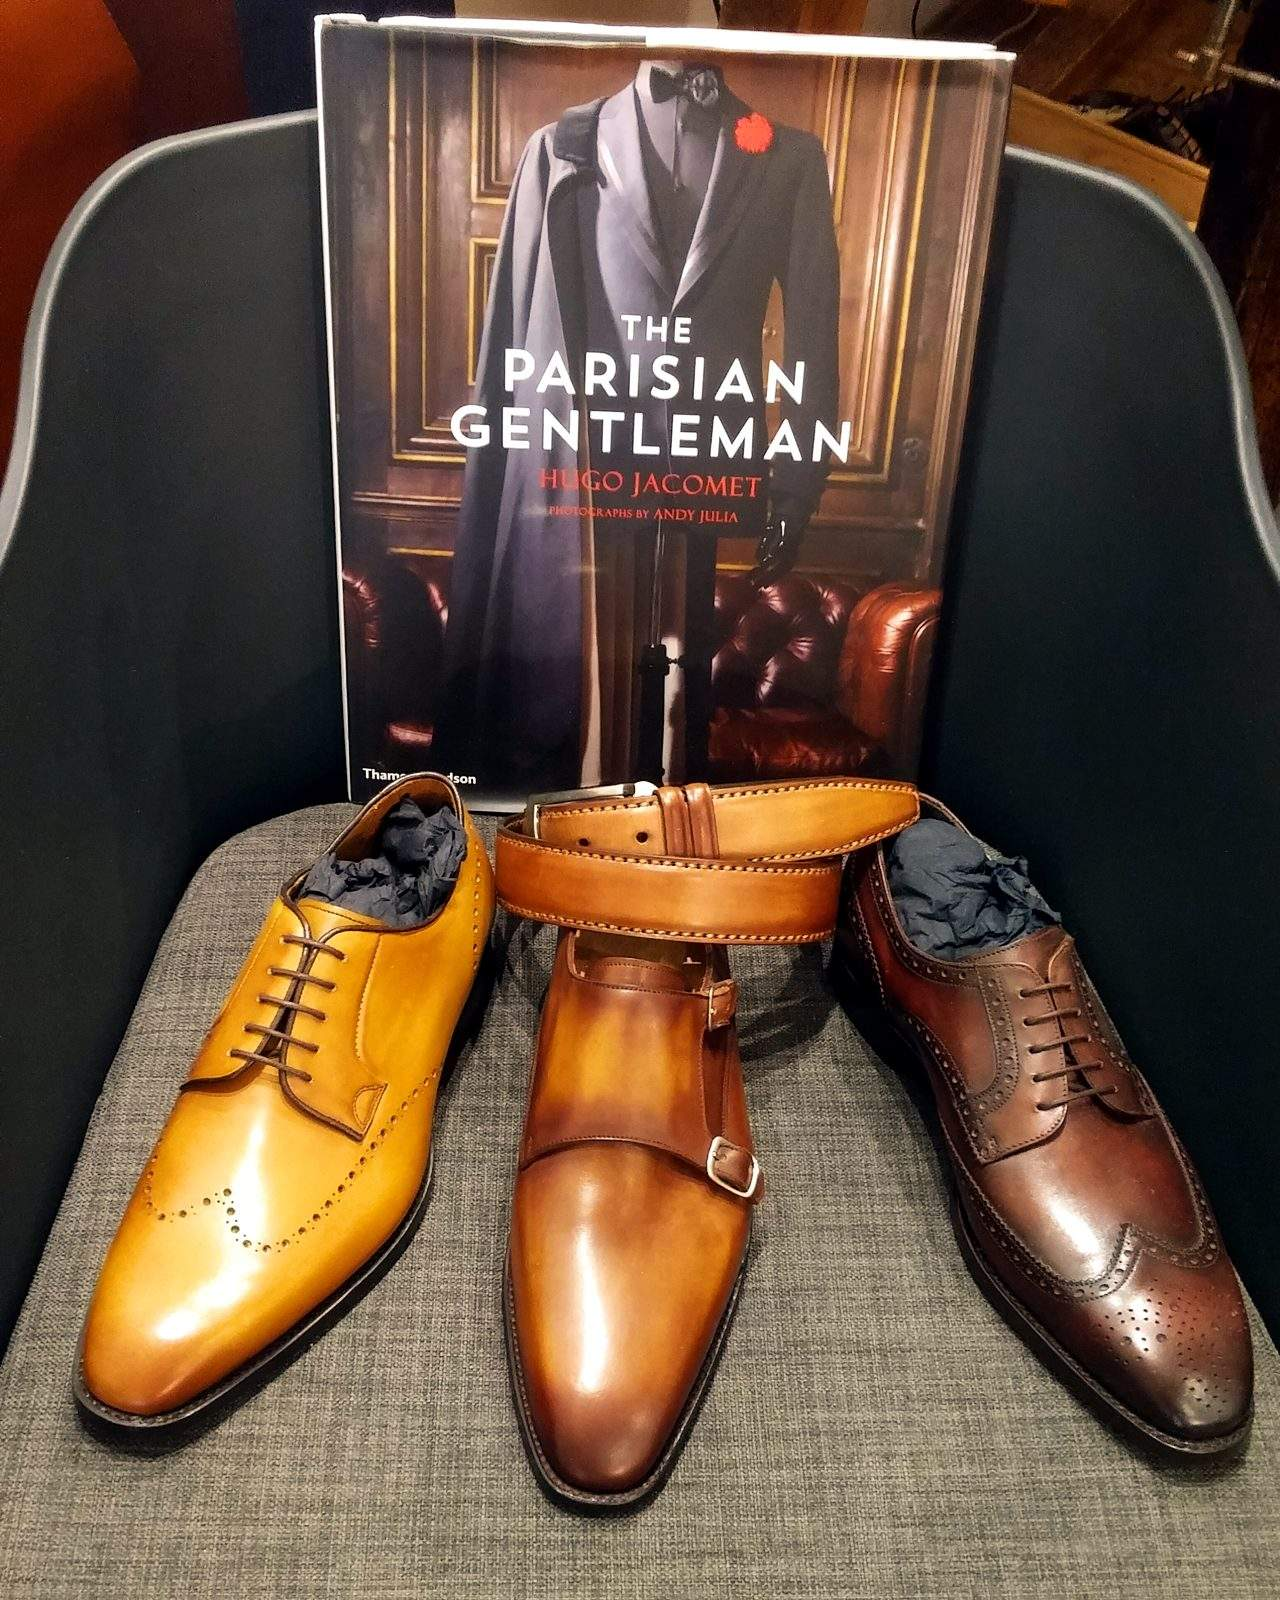 Hugo Jacomet, of The Parisian Gentleman fame, is also a friend of Ramon Cuberta's shoes